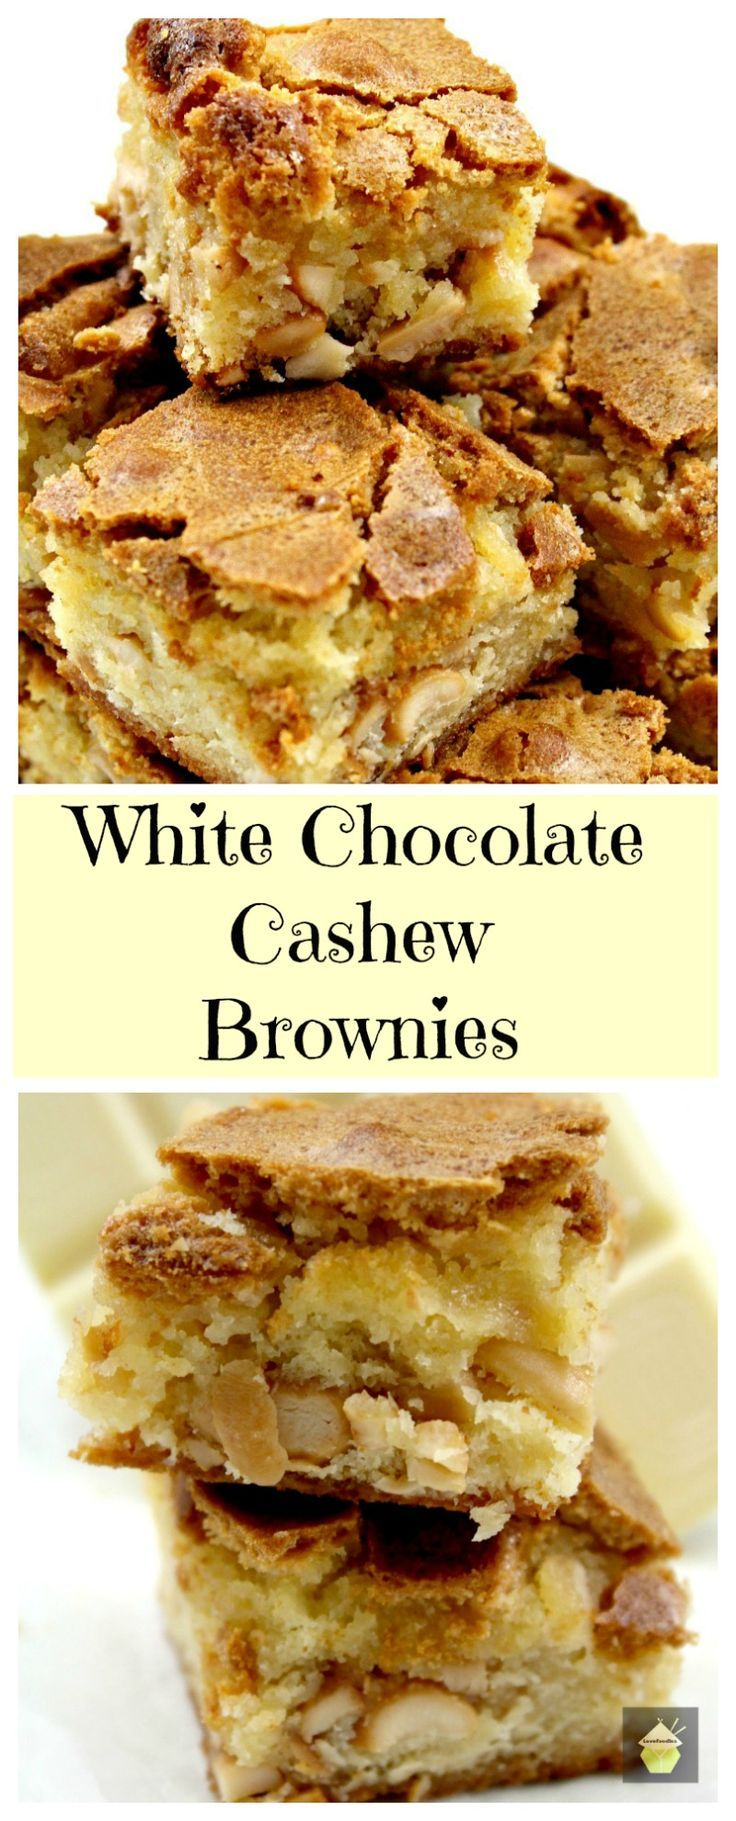 White Chocolate Cashew Brownies. A delicious brownie recipe with great flavors. Really easy recipe too! | Lovefoodies.com